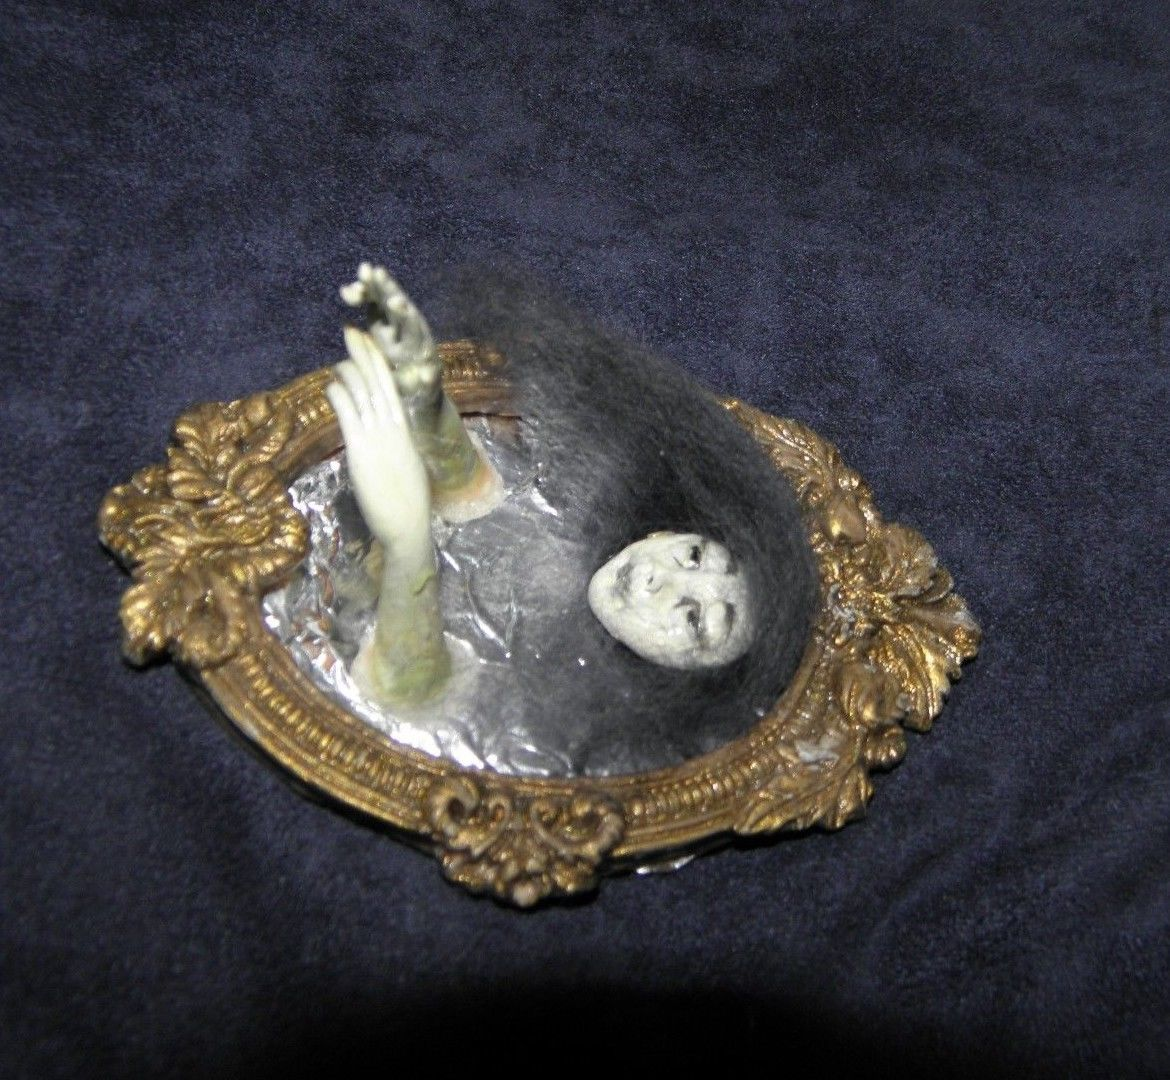 Dollhouse Miniatures In Las Vegas: Scary Ghost In The Mirror On Halloween 1:12 OOAK Realistic